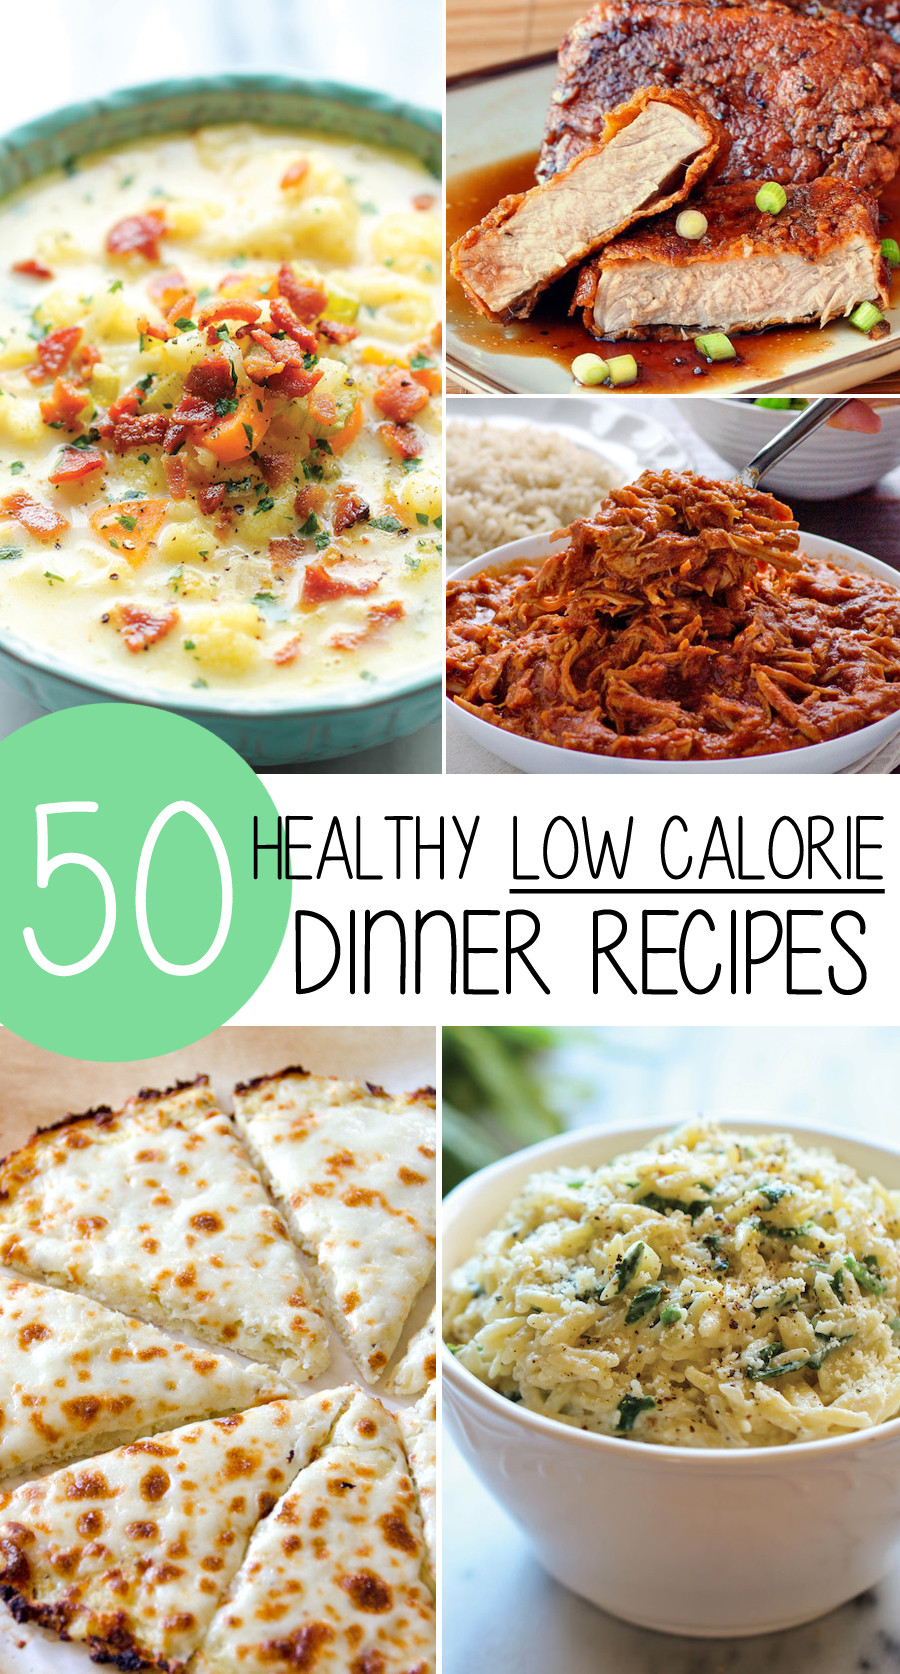 Low Calorie Dinners  50 Healthy Low Calorie Weight Loss Dinner Recipes